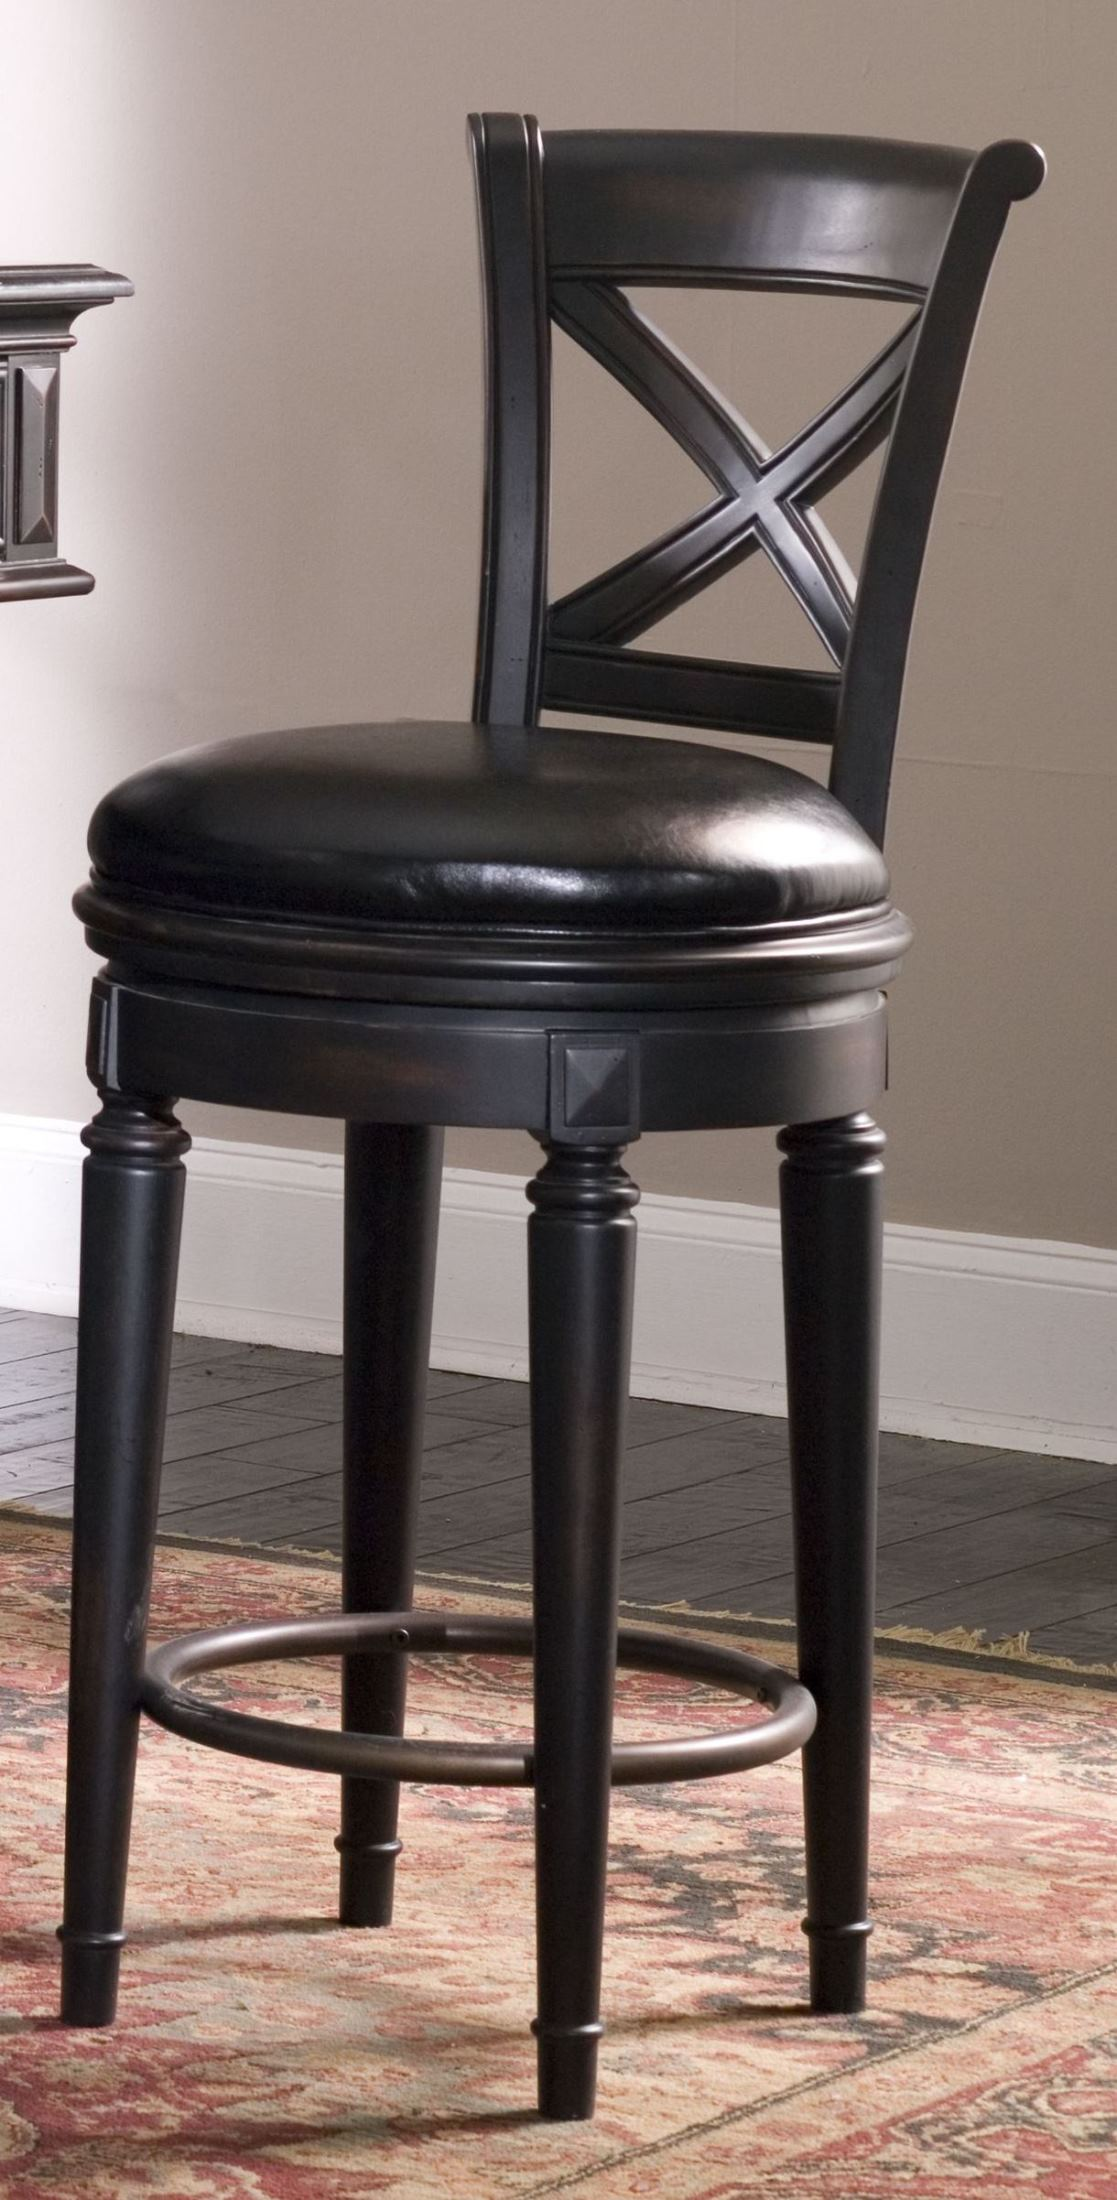 Counter Height Stools Buy Discount Counter Height Chairs